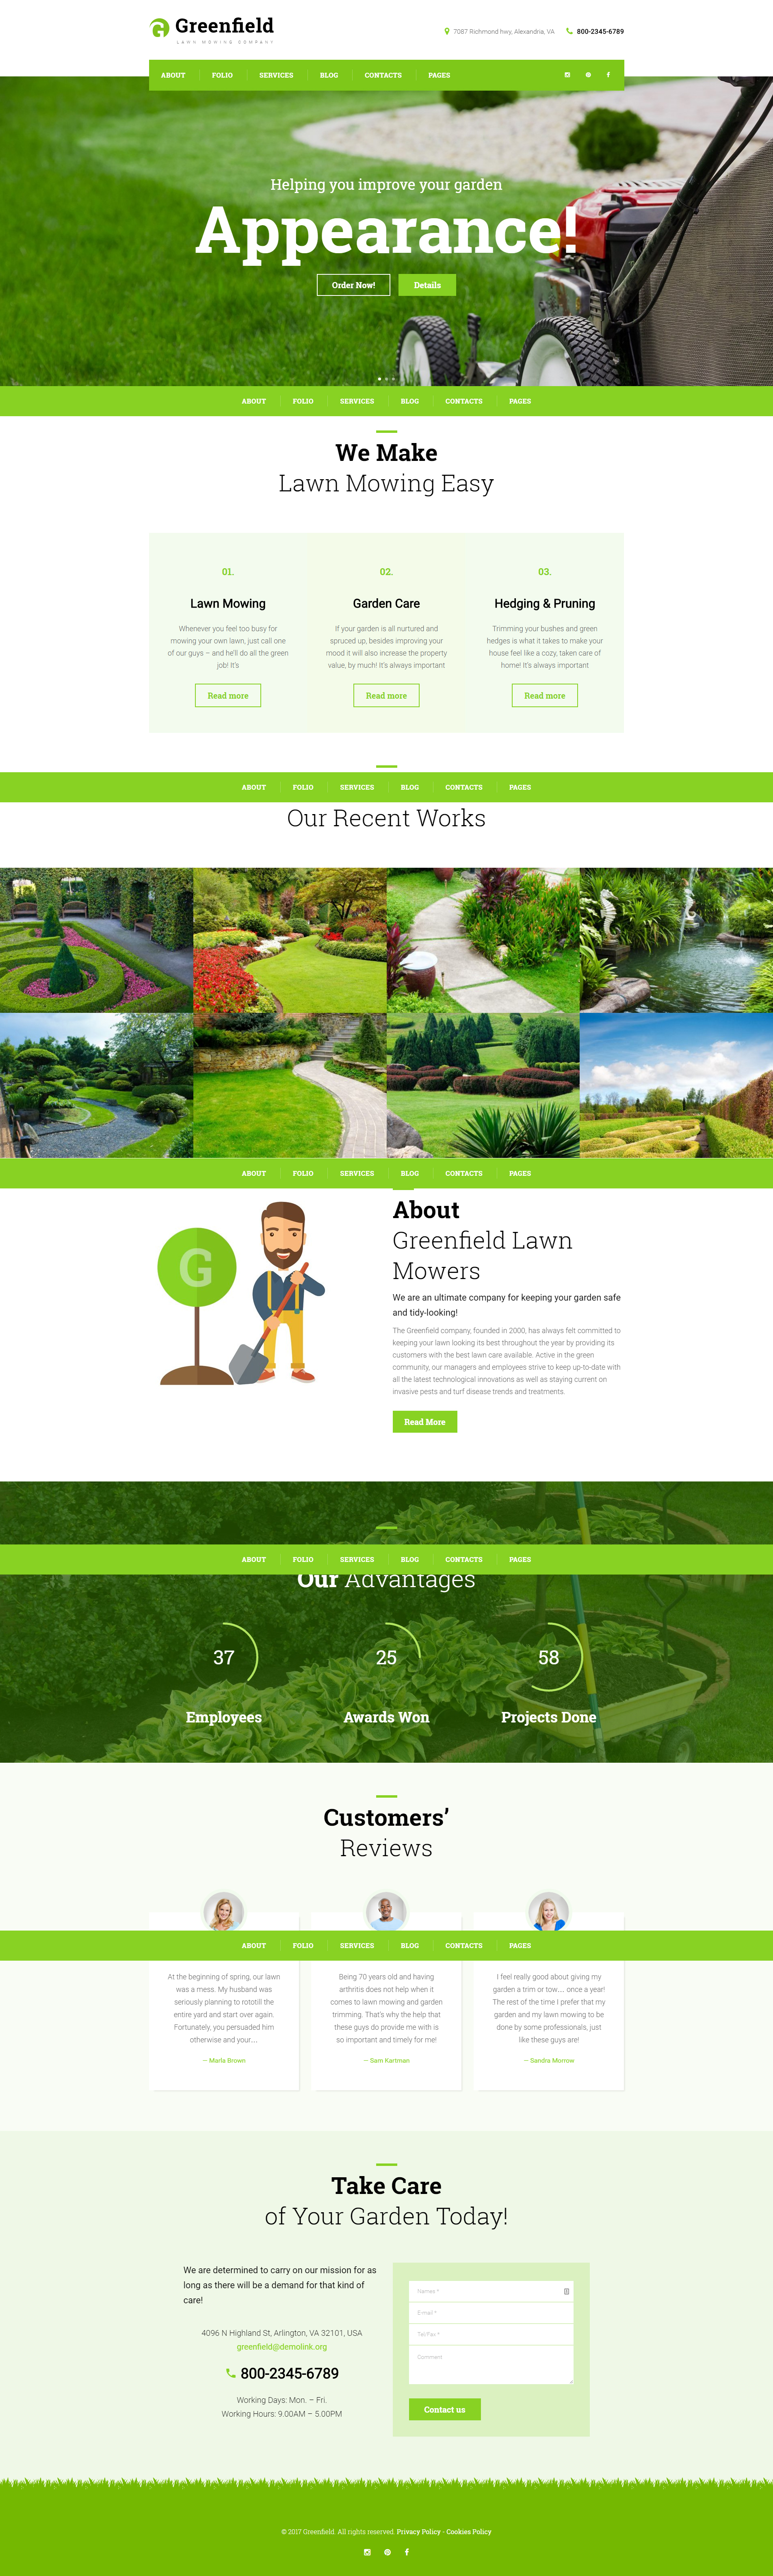 lawn mowing and garden maintenance